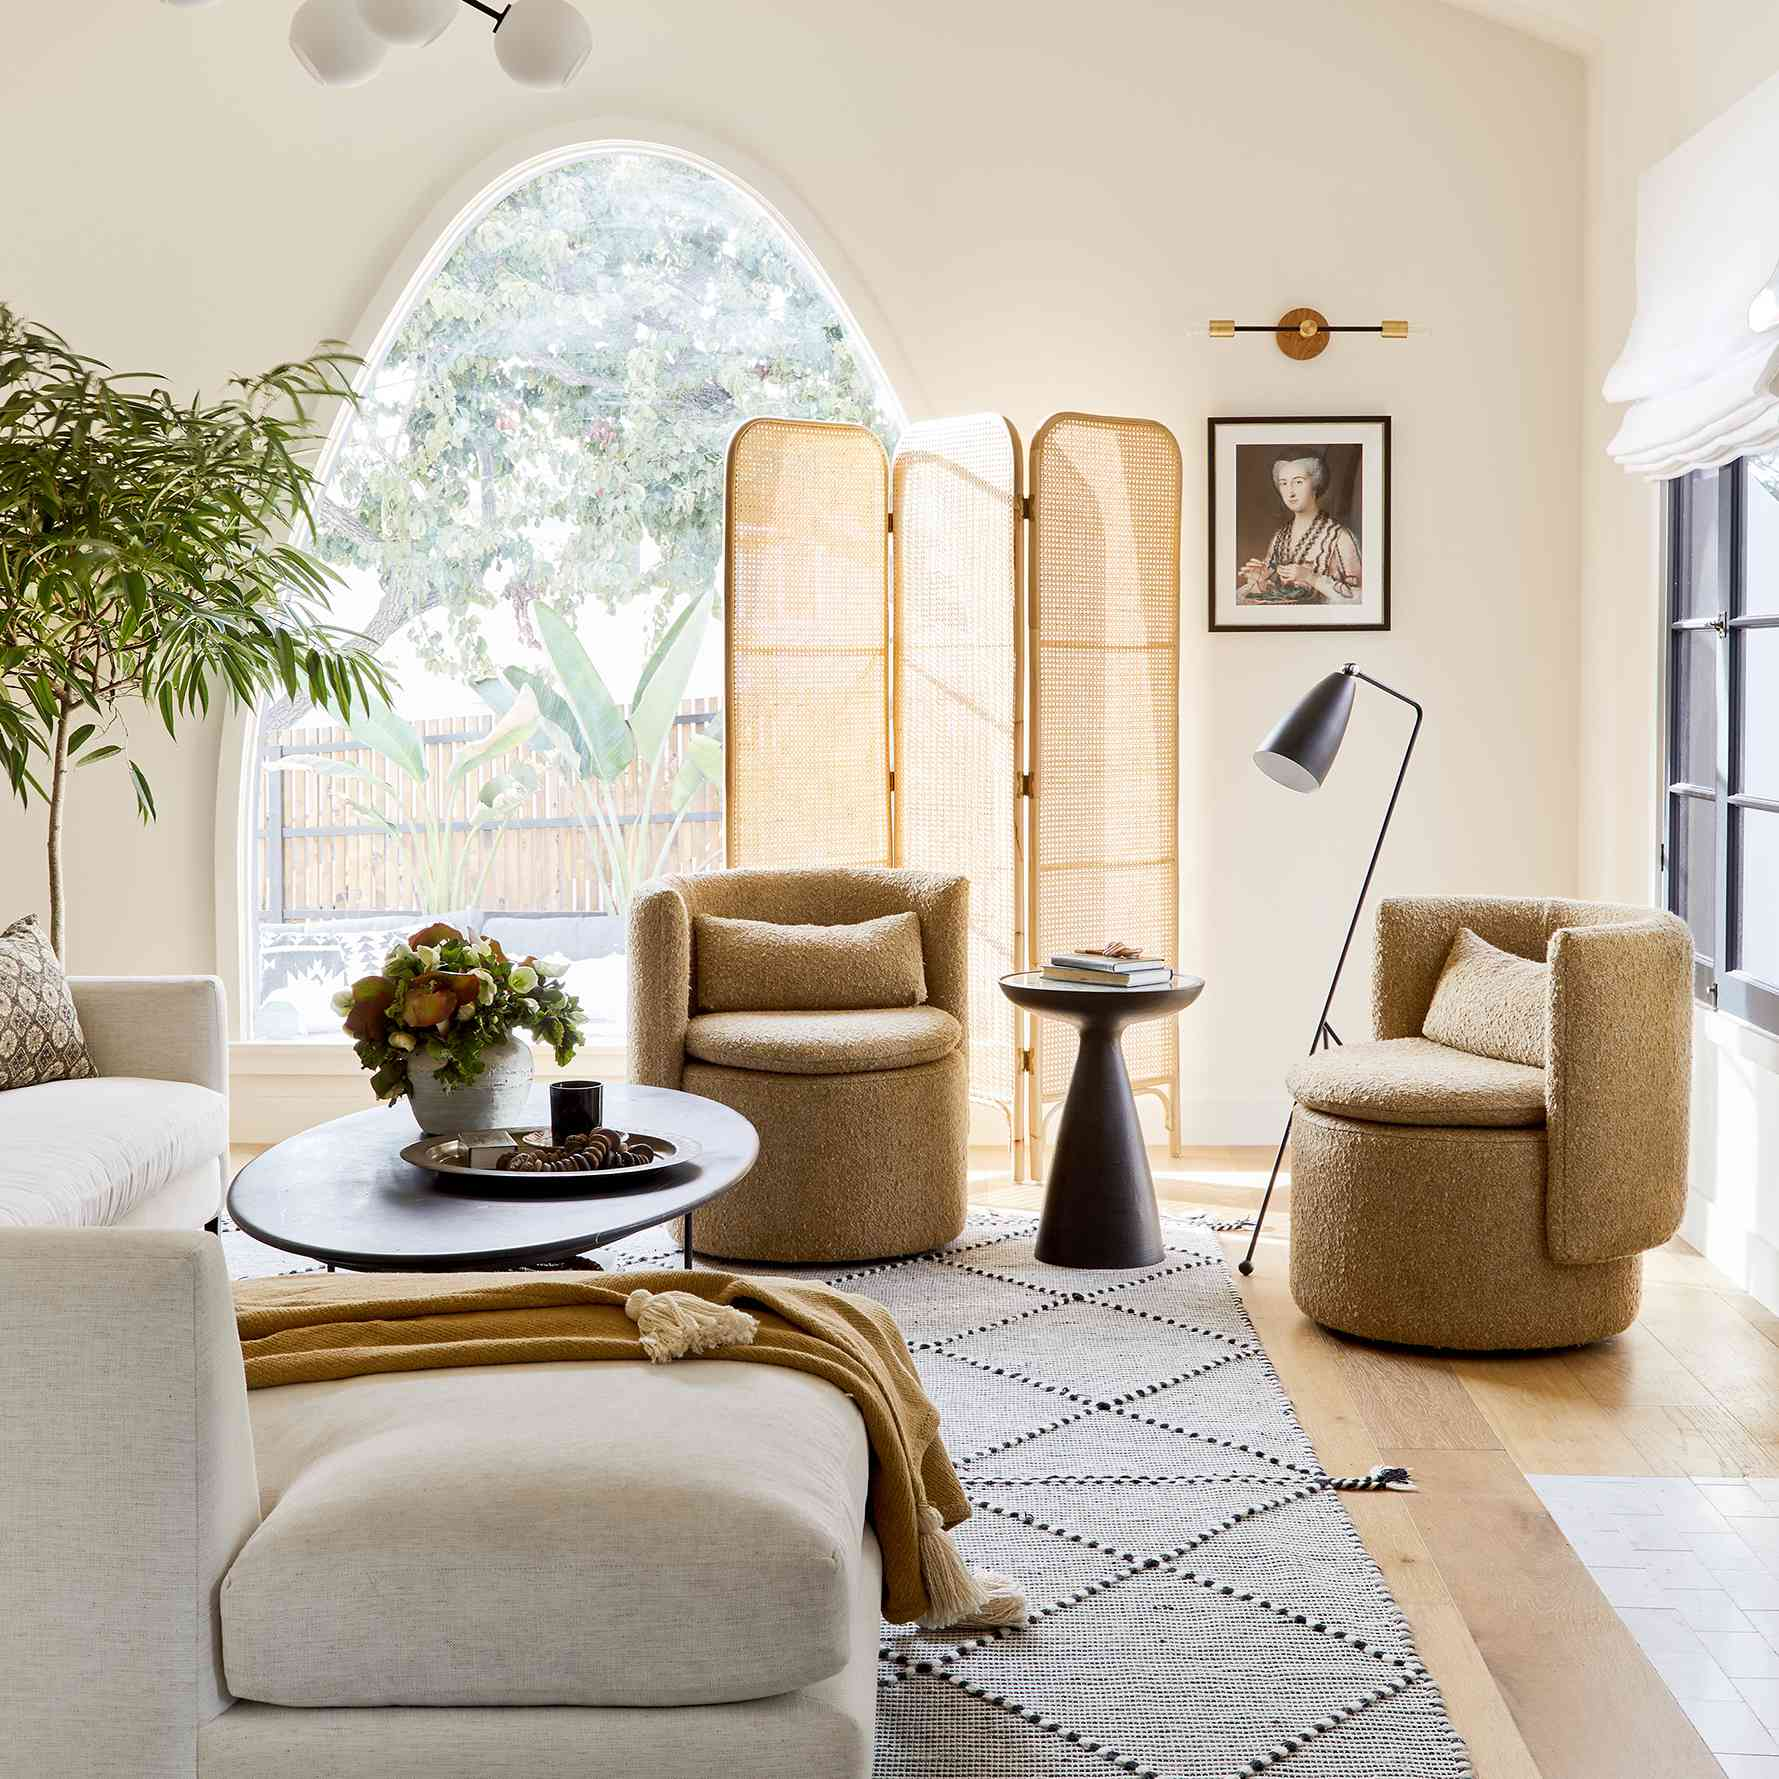 Home of Jaclyn Johnson, styled by CJ, designed by Ginny Macdonald